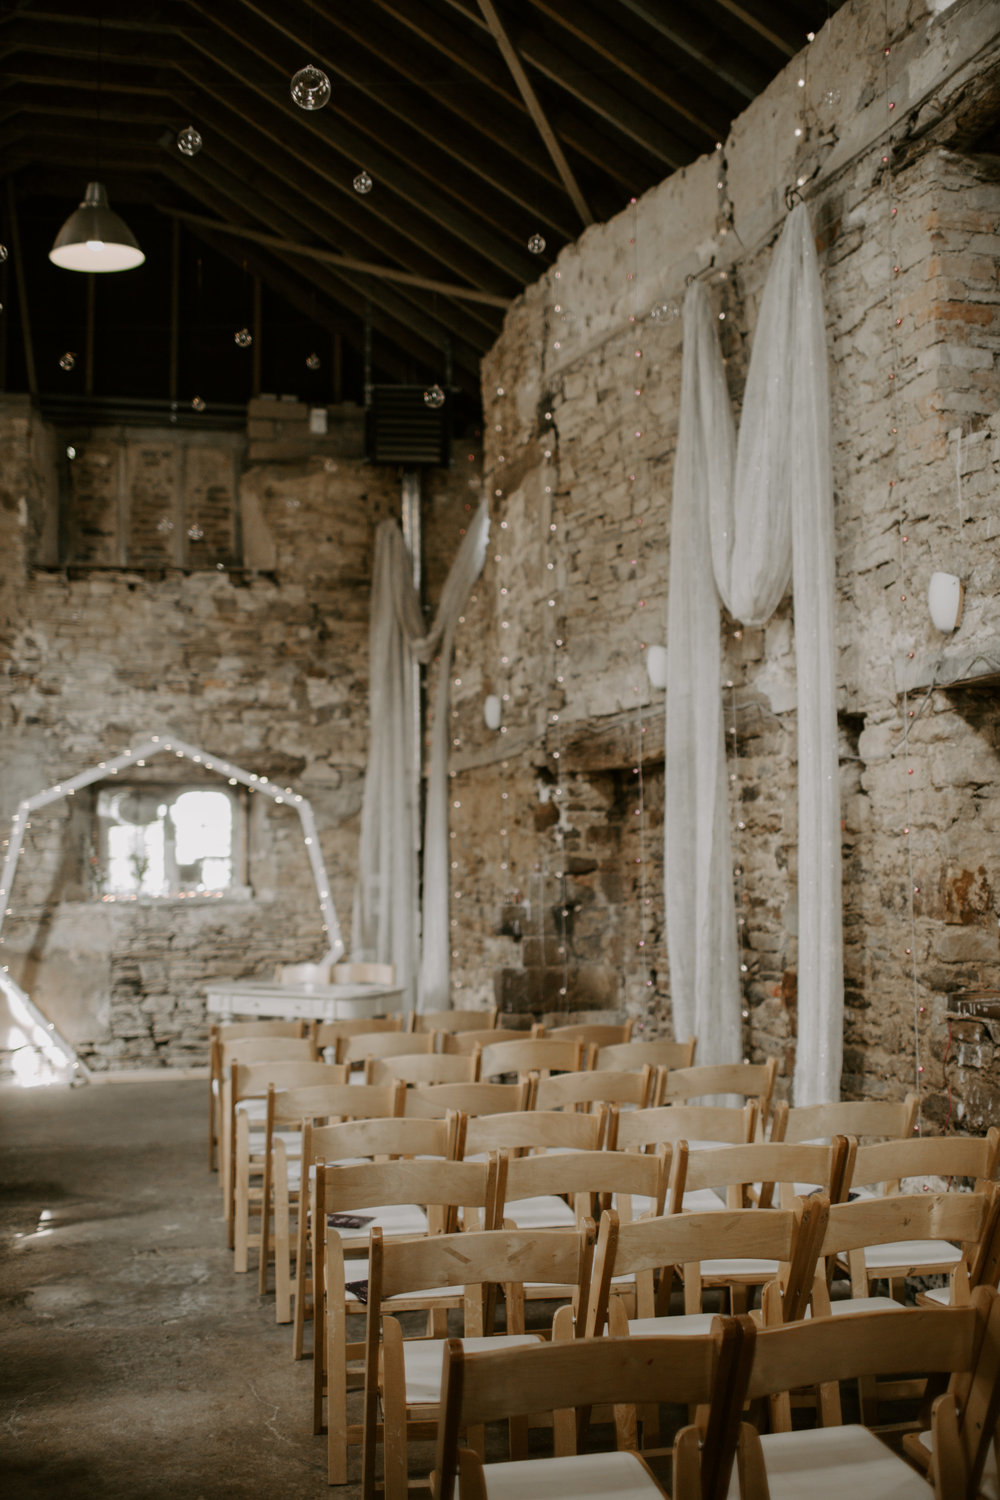 Groom Matt created the hexagon backdrop himself which added a contemporary twist to the chapel space at Ash Barton.